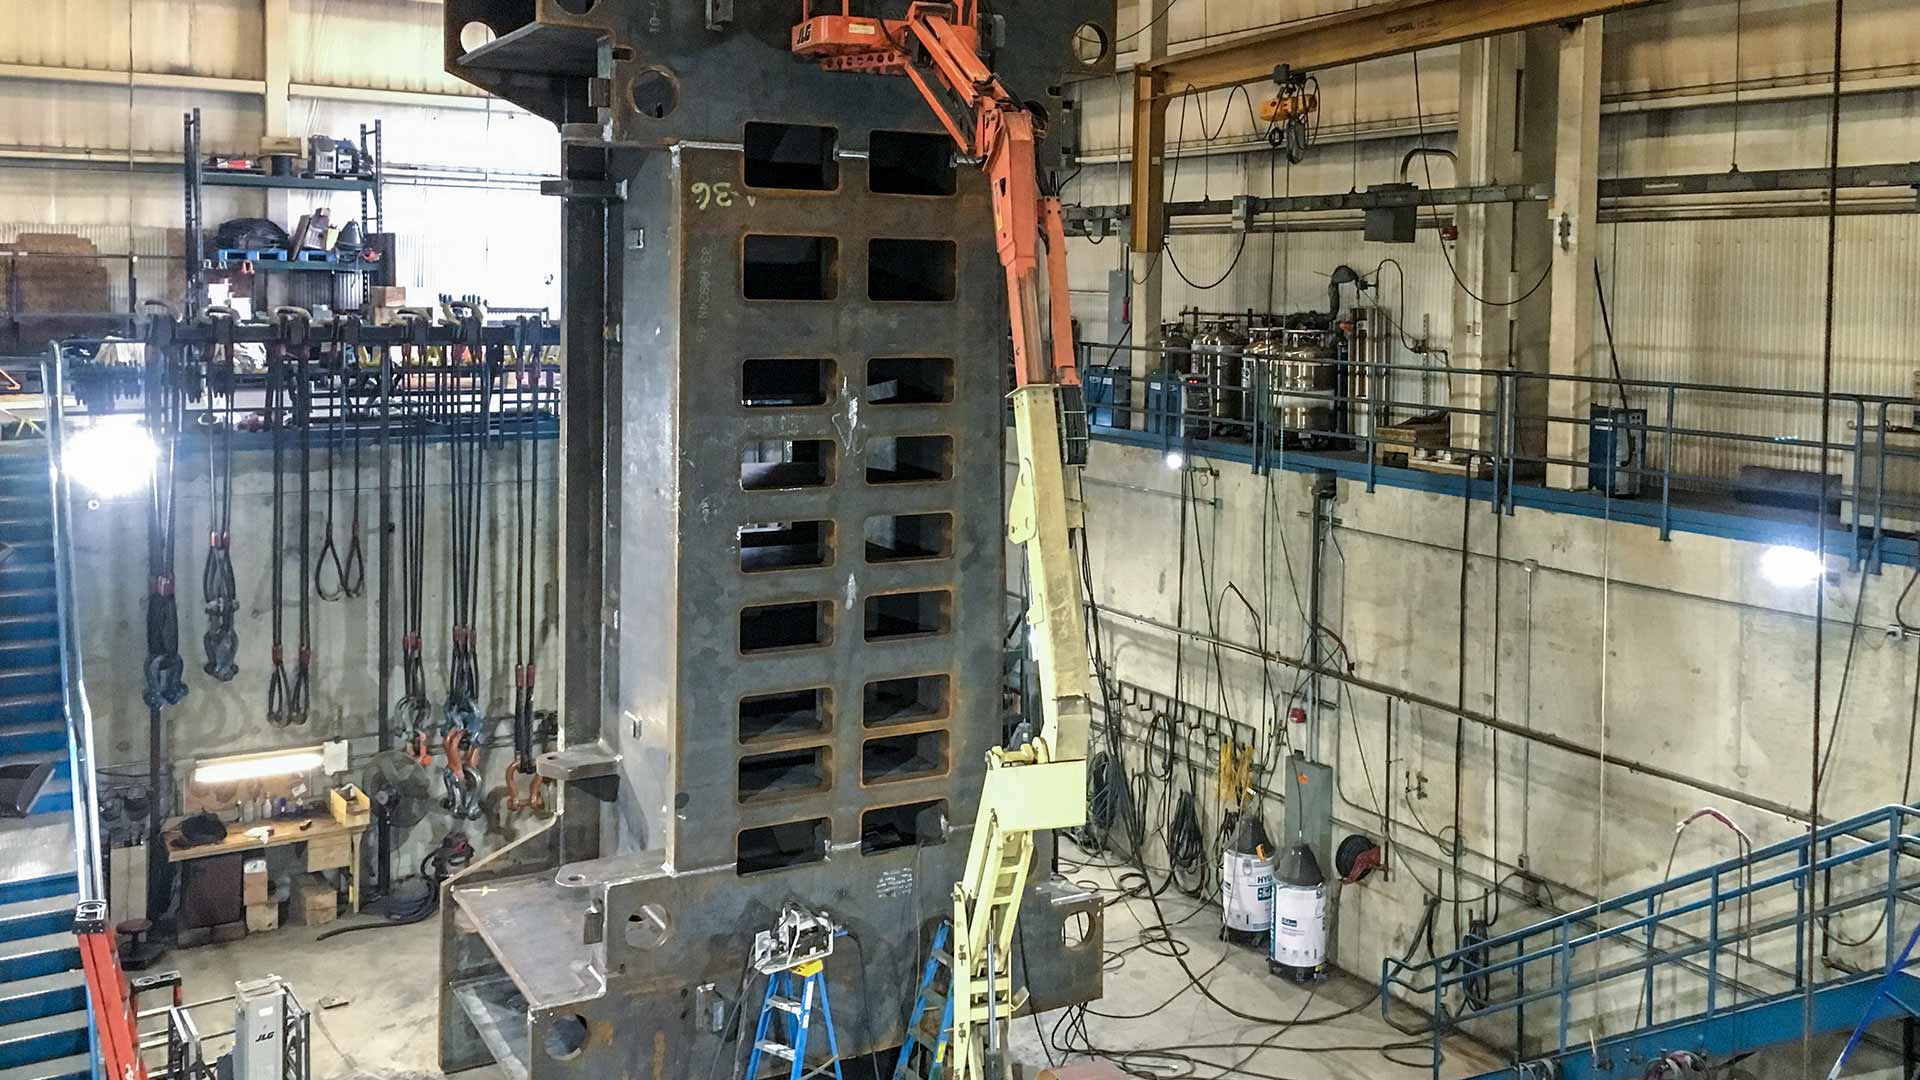 Massive Fabrications, Welding Pit for Large Fabrication & Welding Work